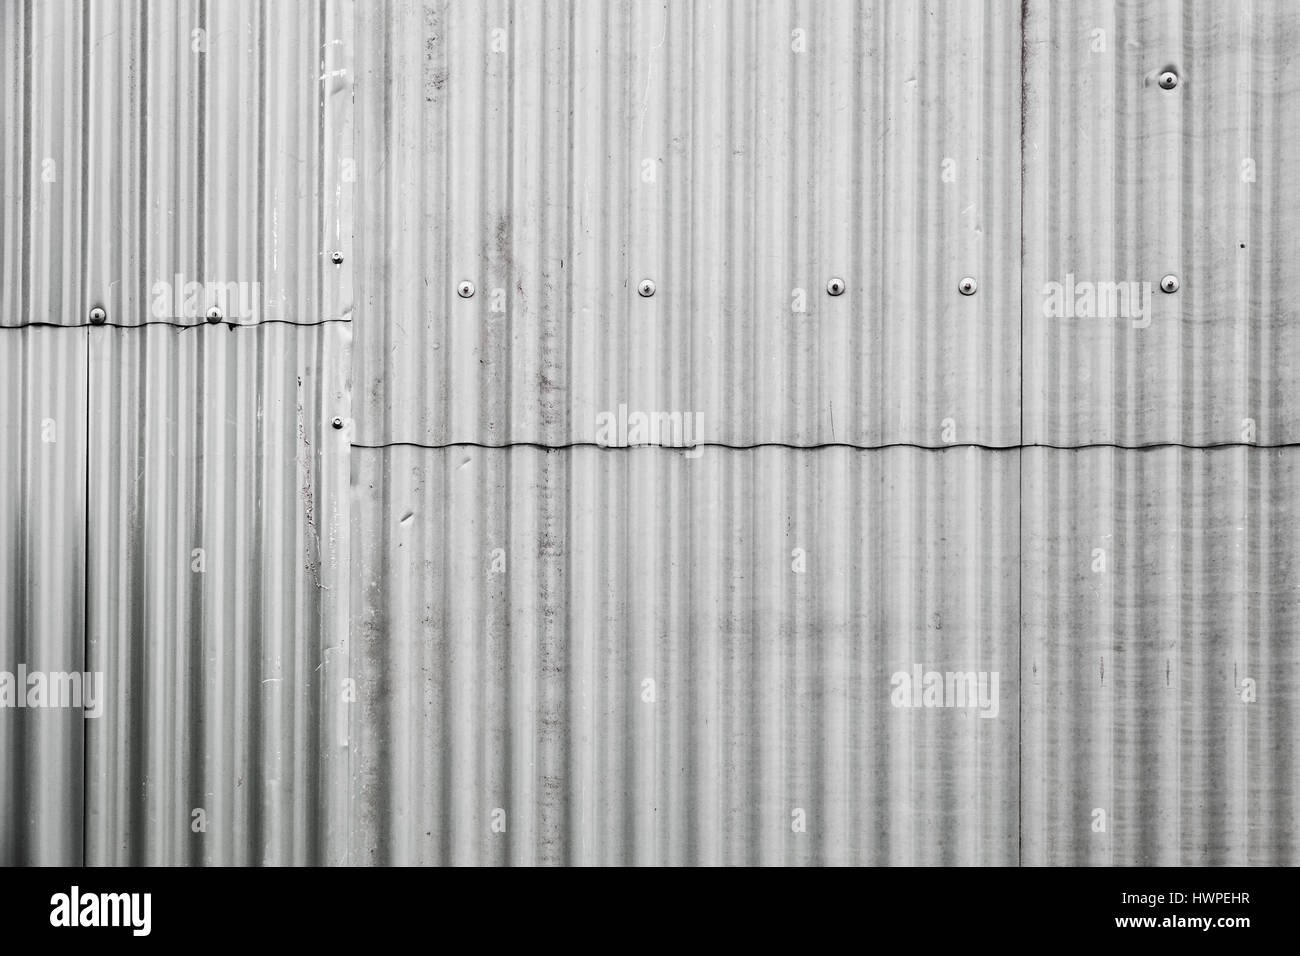 gray corrugated metal fence